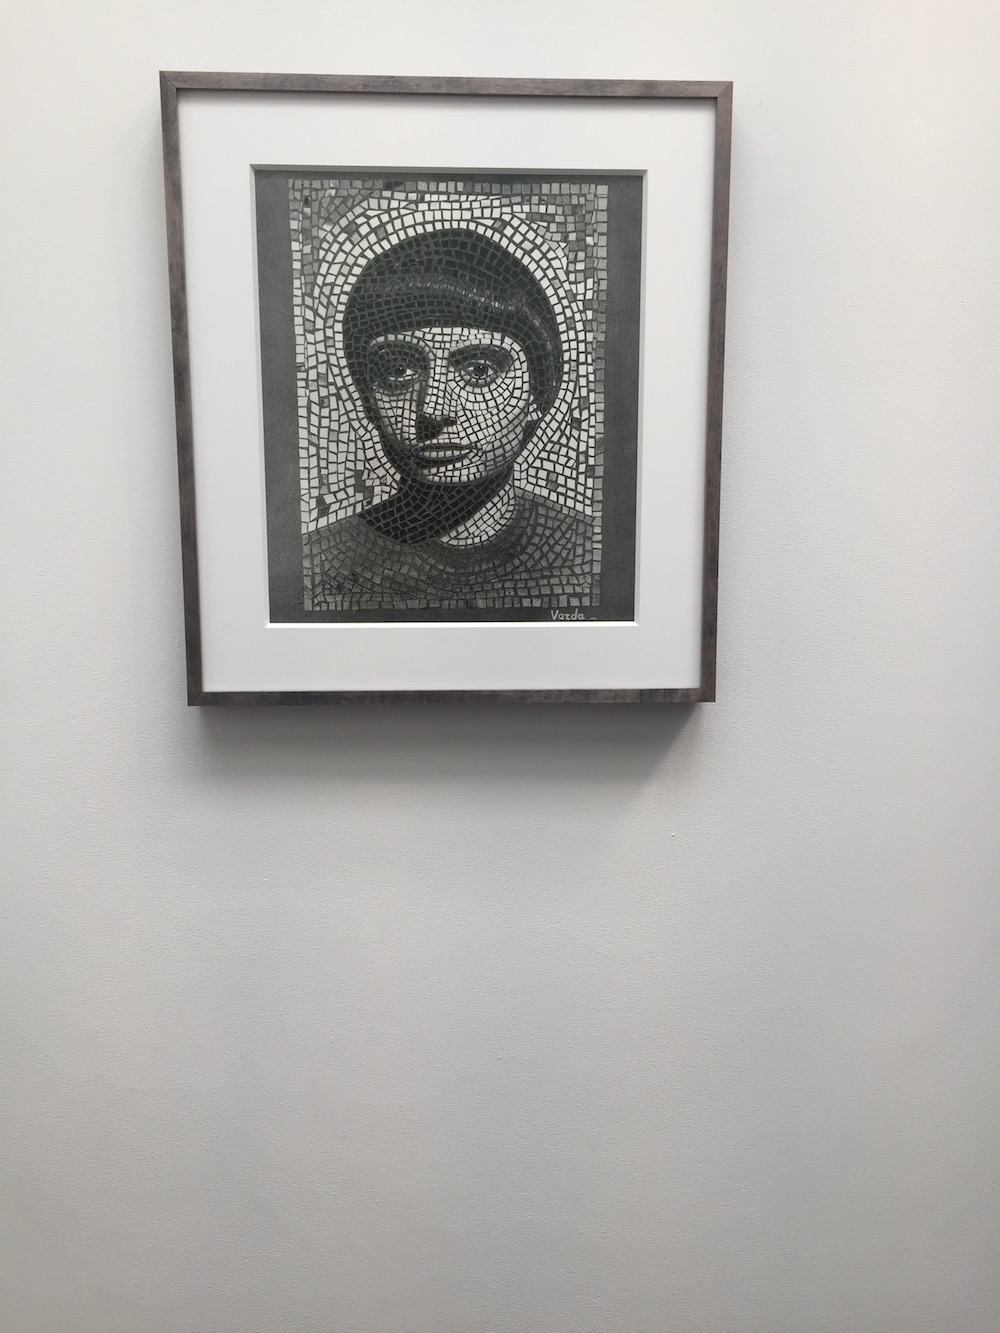 Agnes Varda, self-portrait at 20.